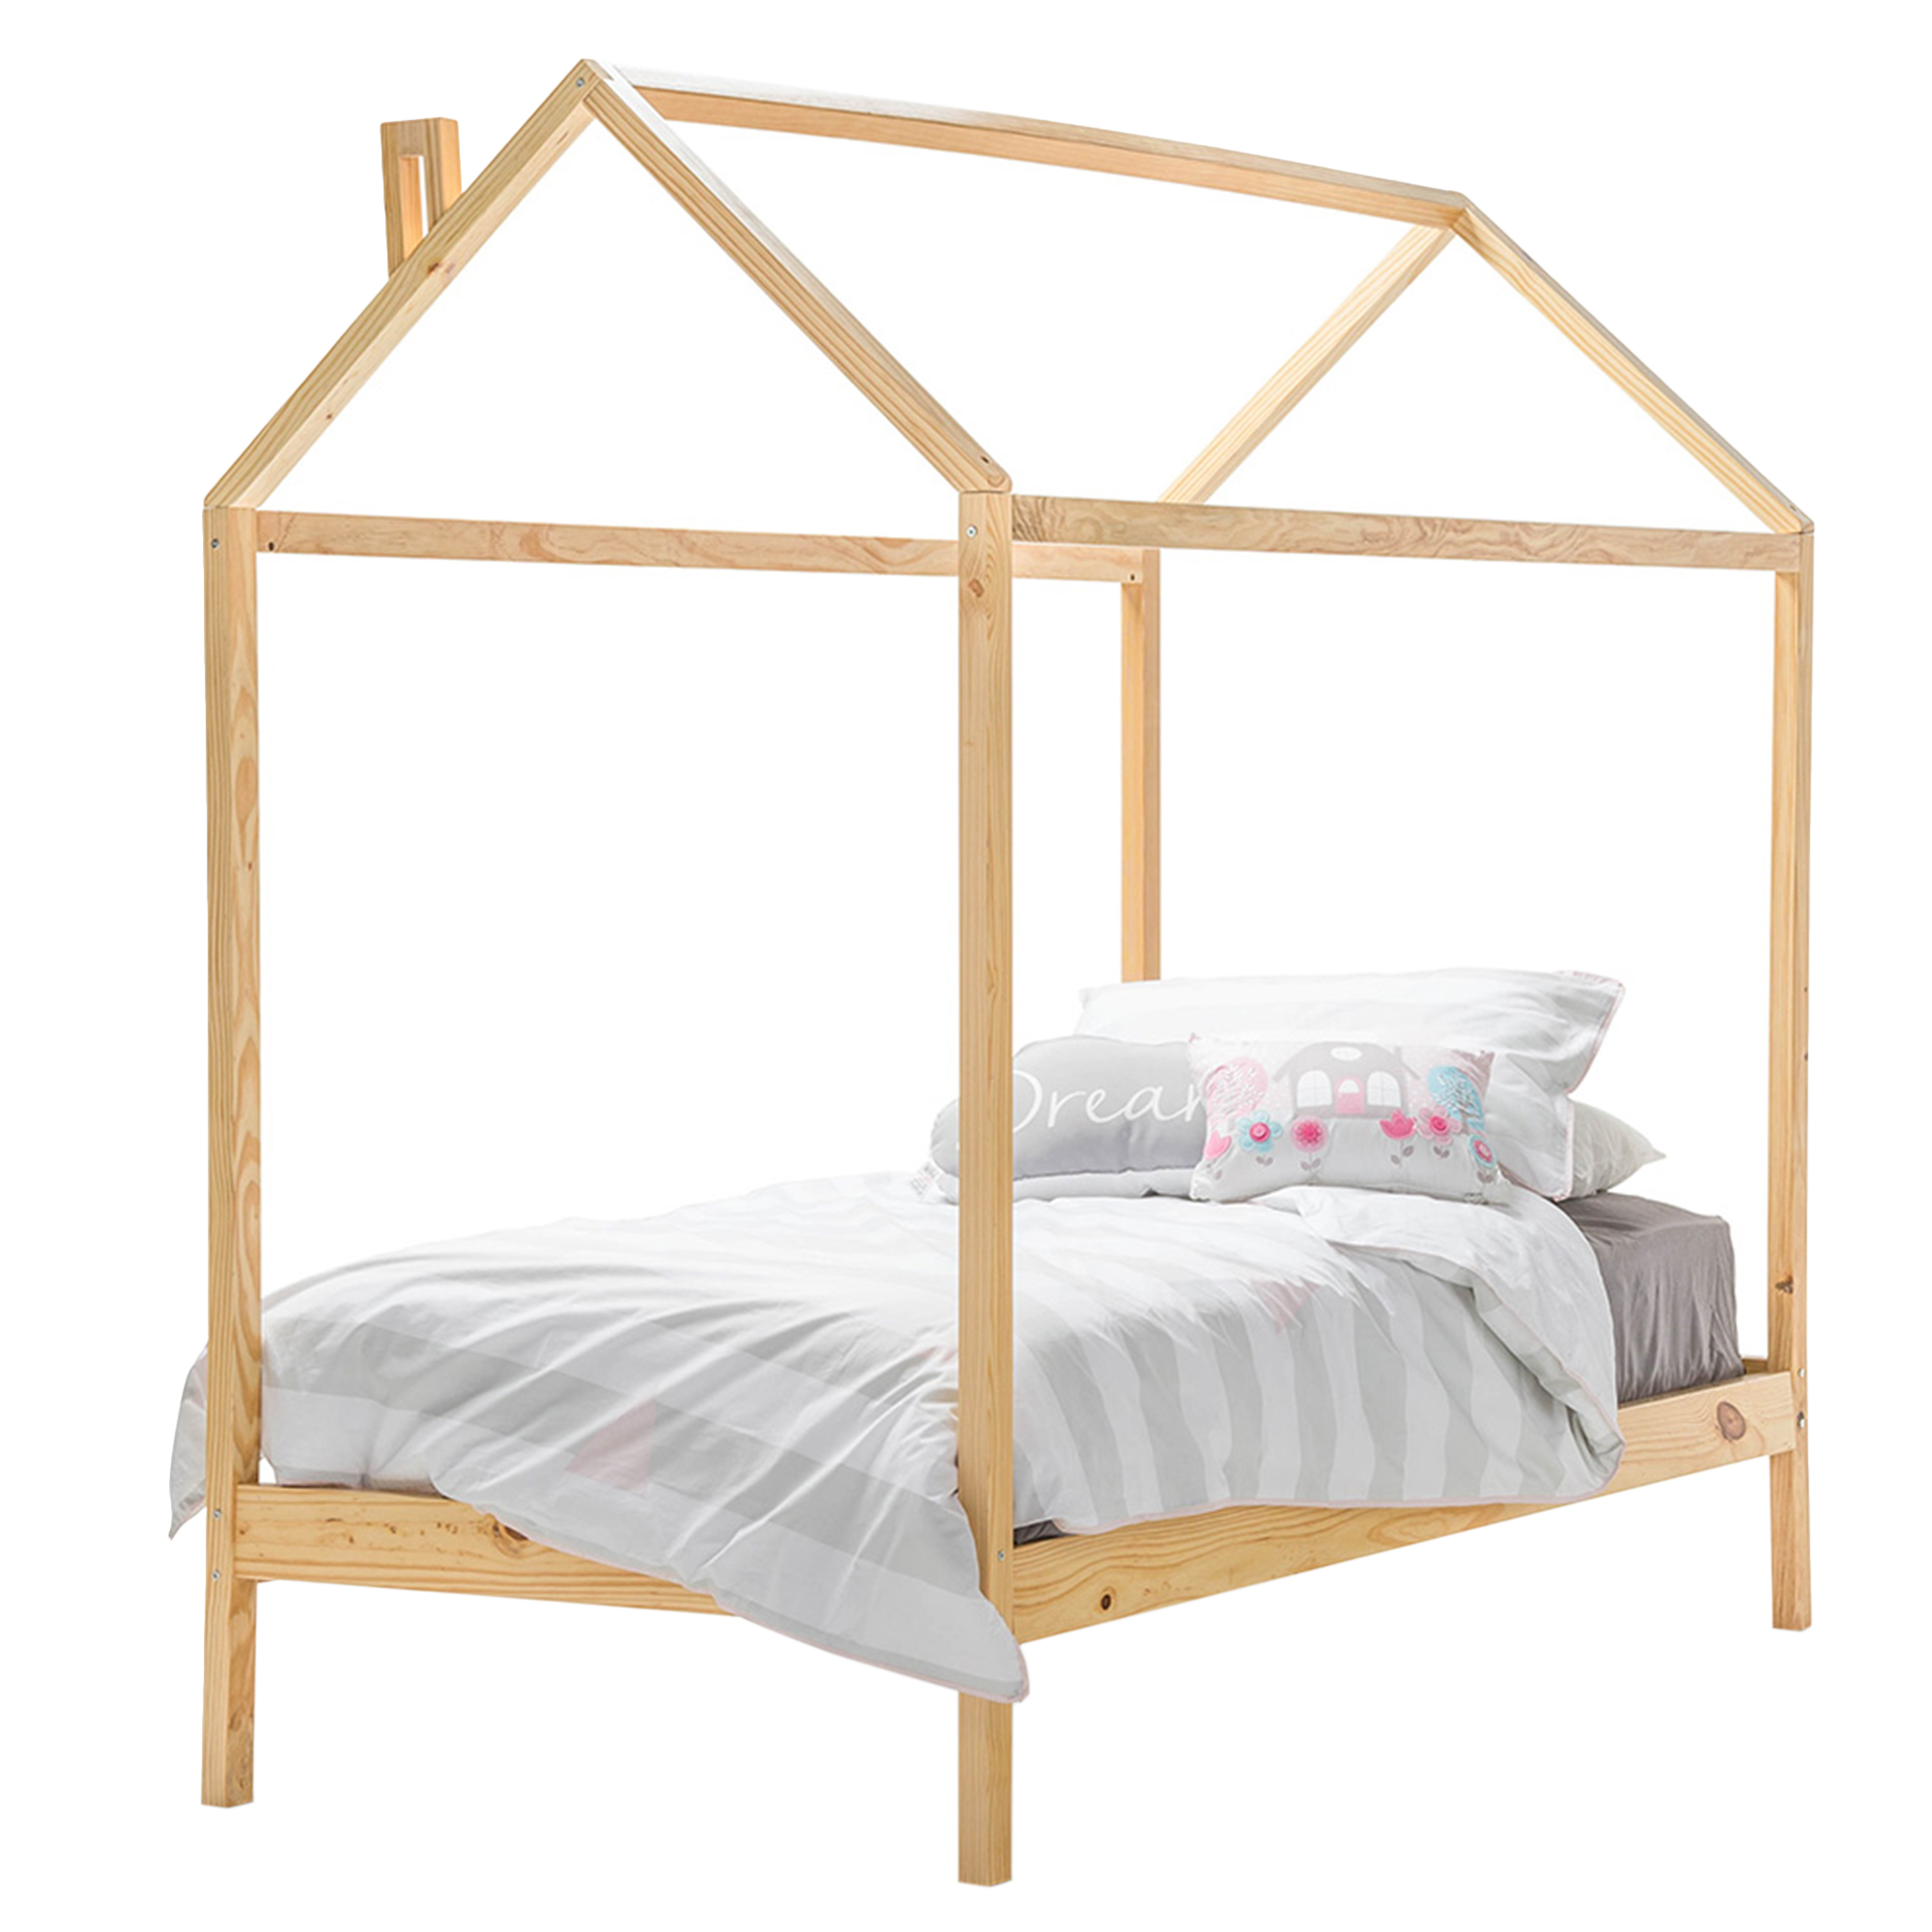 Wooden House Single Bed | Temple & Webster